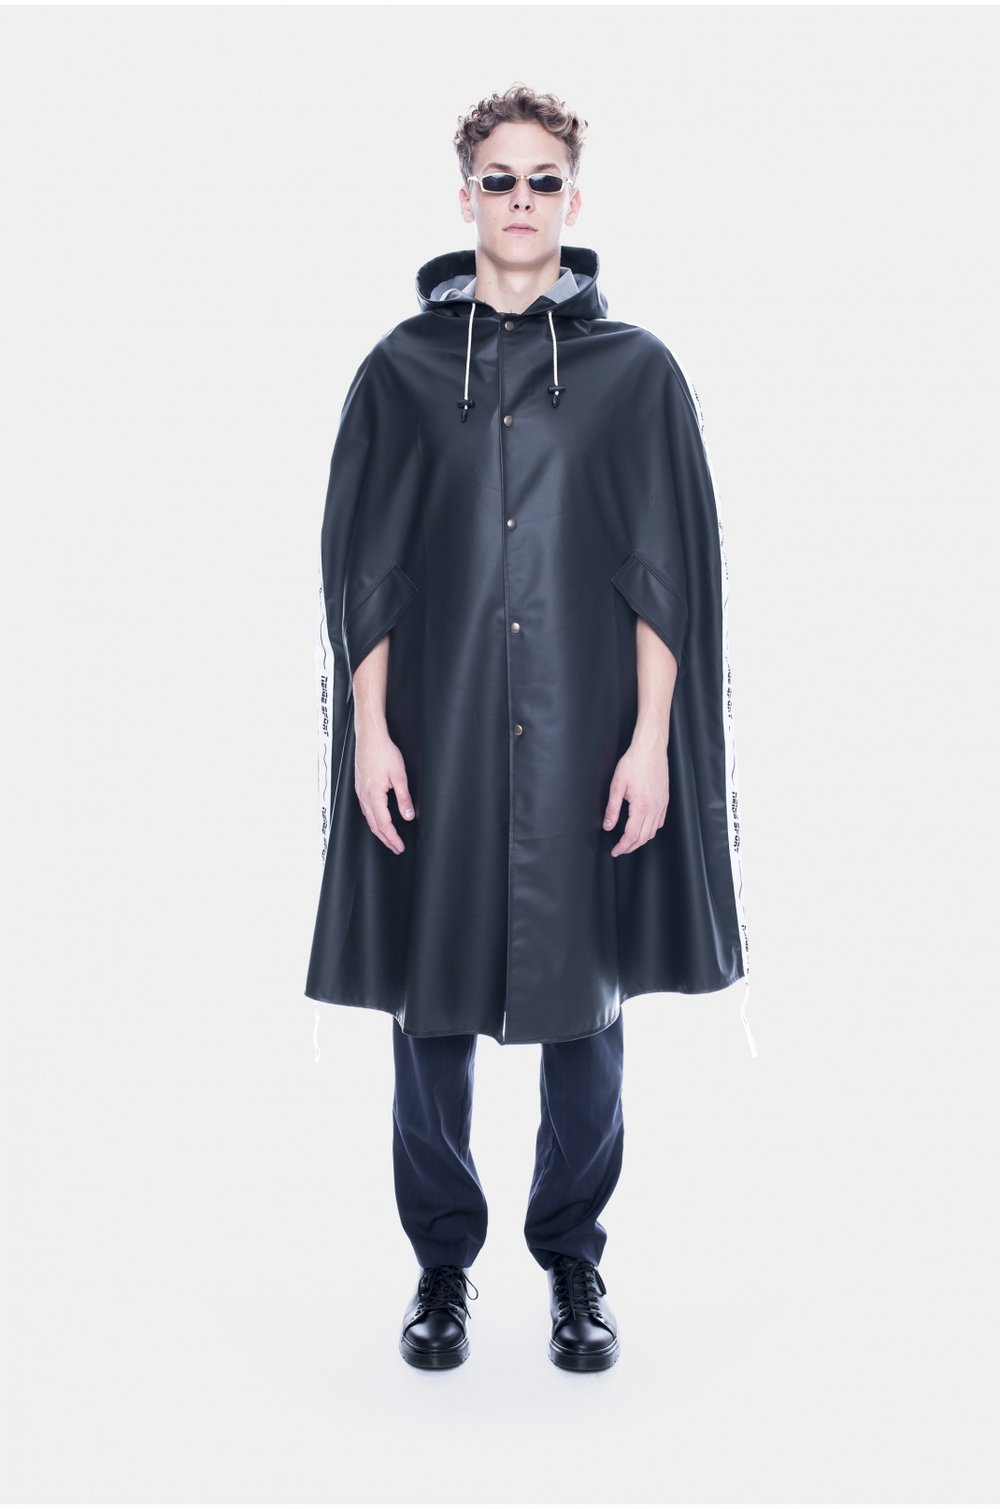 bodegathirteen-neige-sport-raincape-black